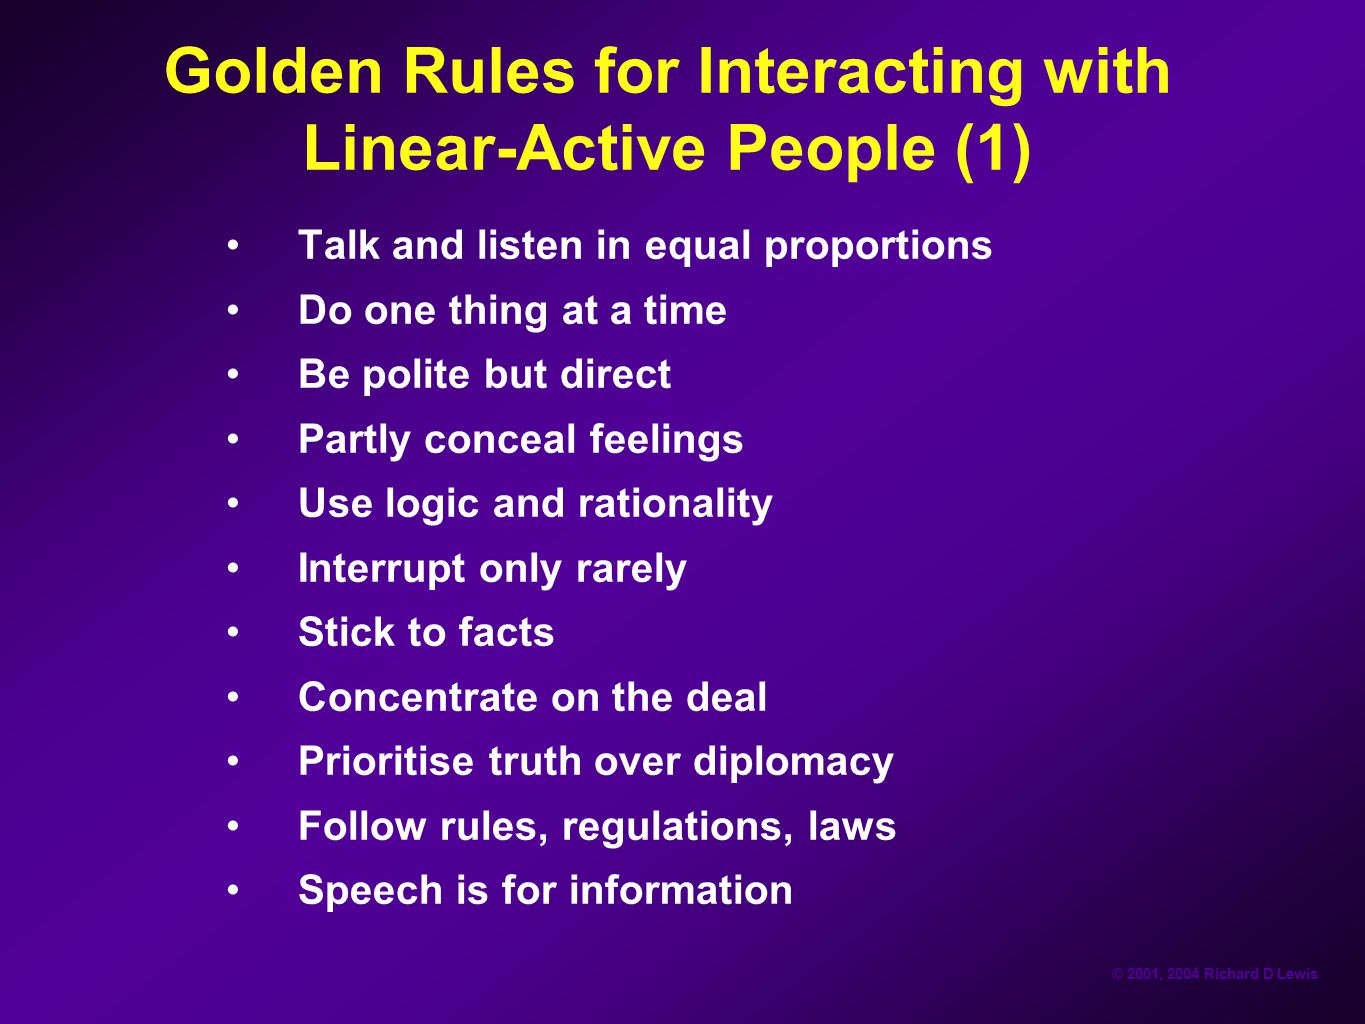 Golden Rules for Interacting with Linear-Active People (1)